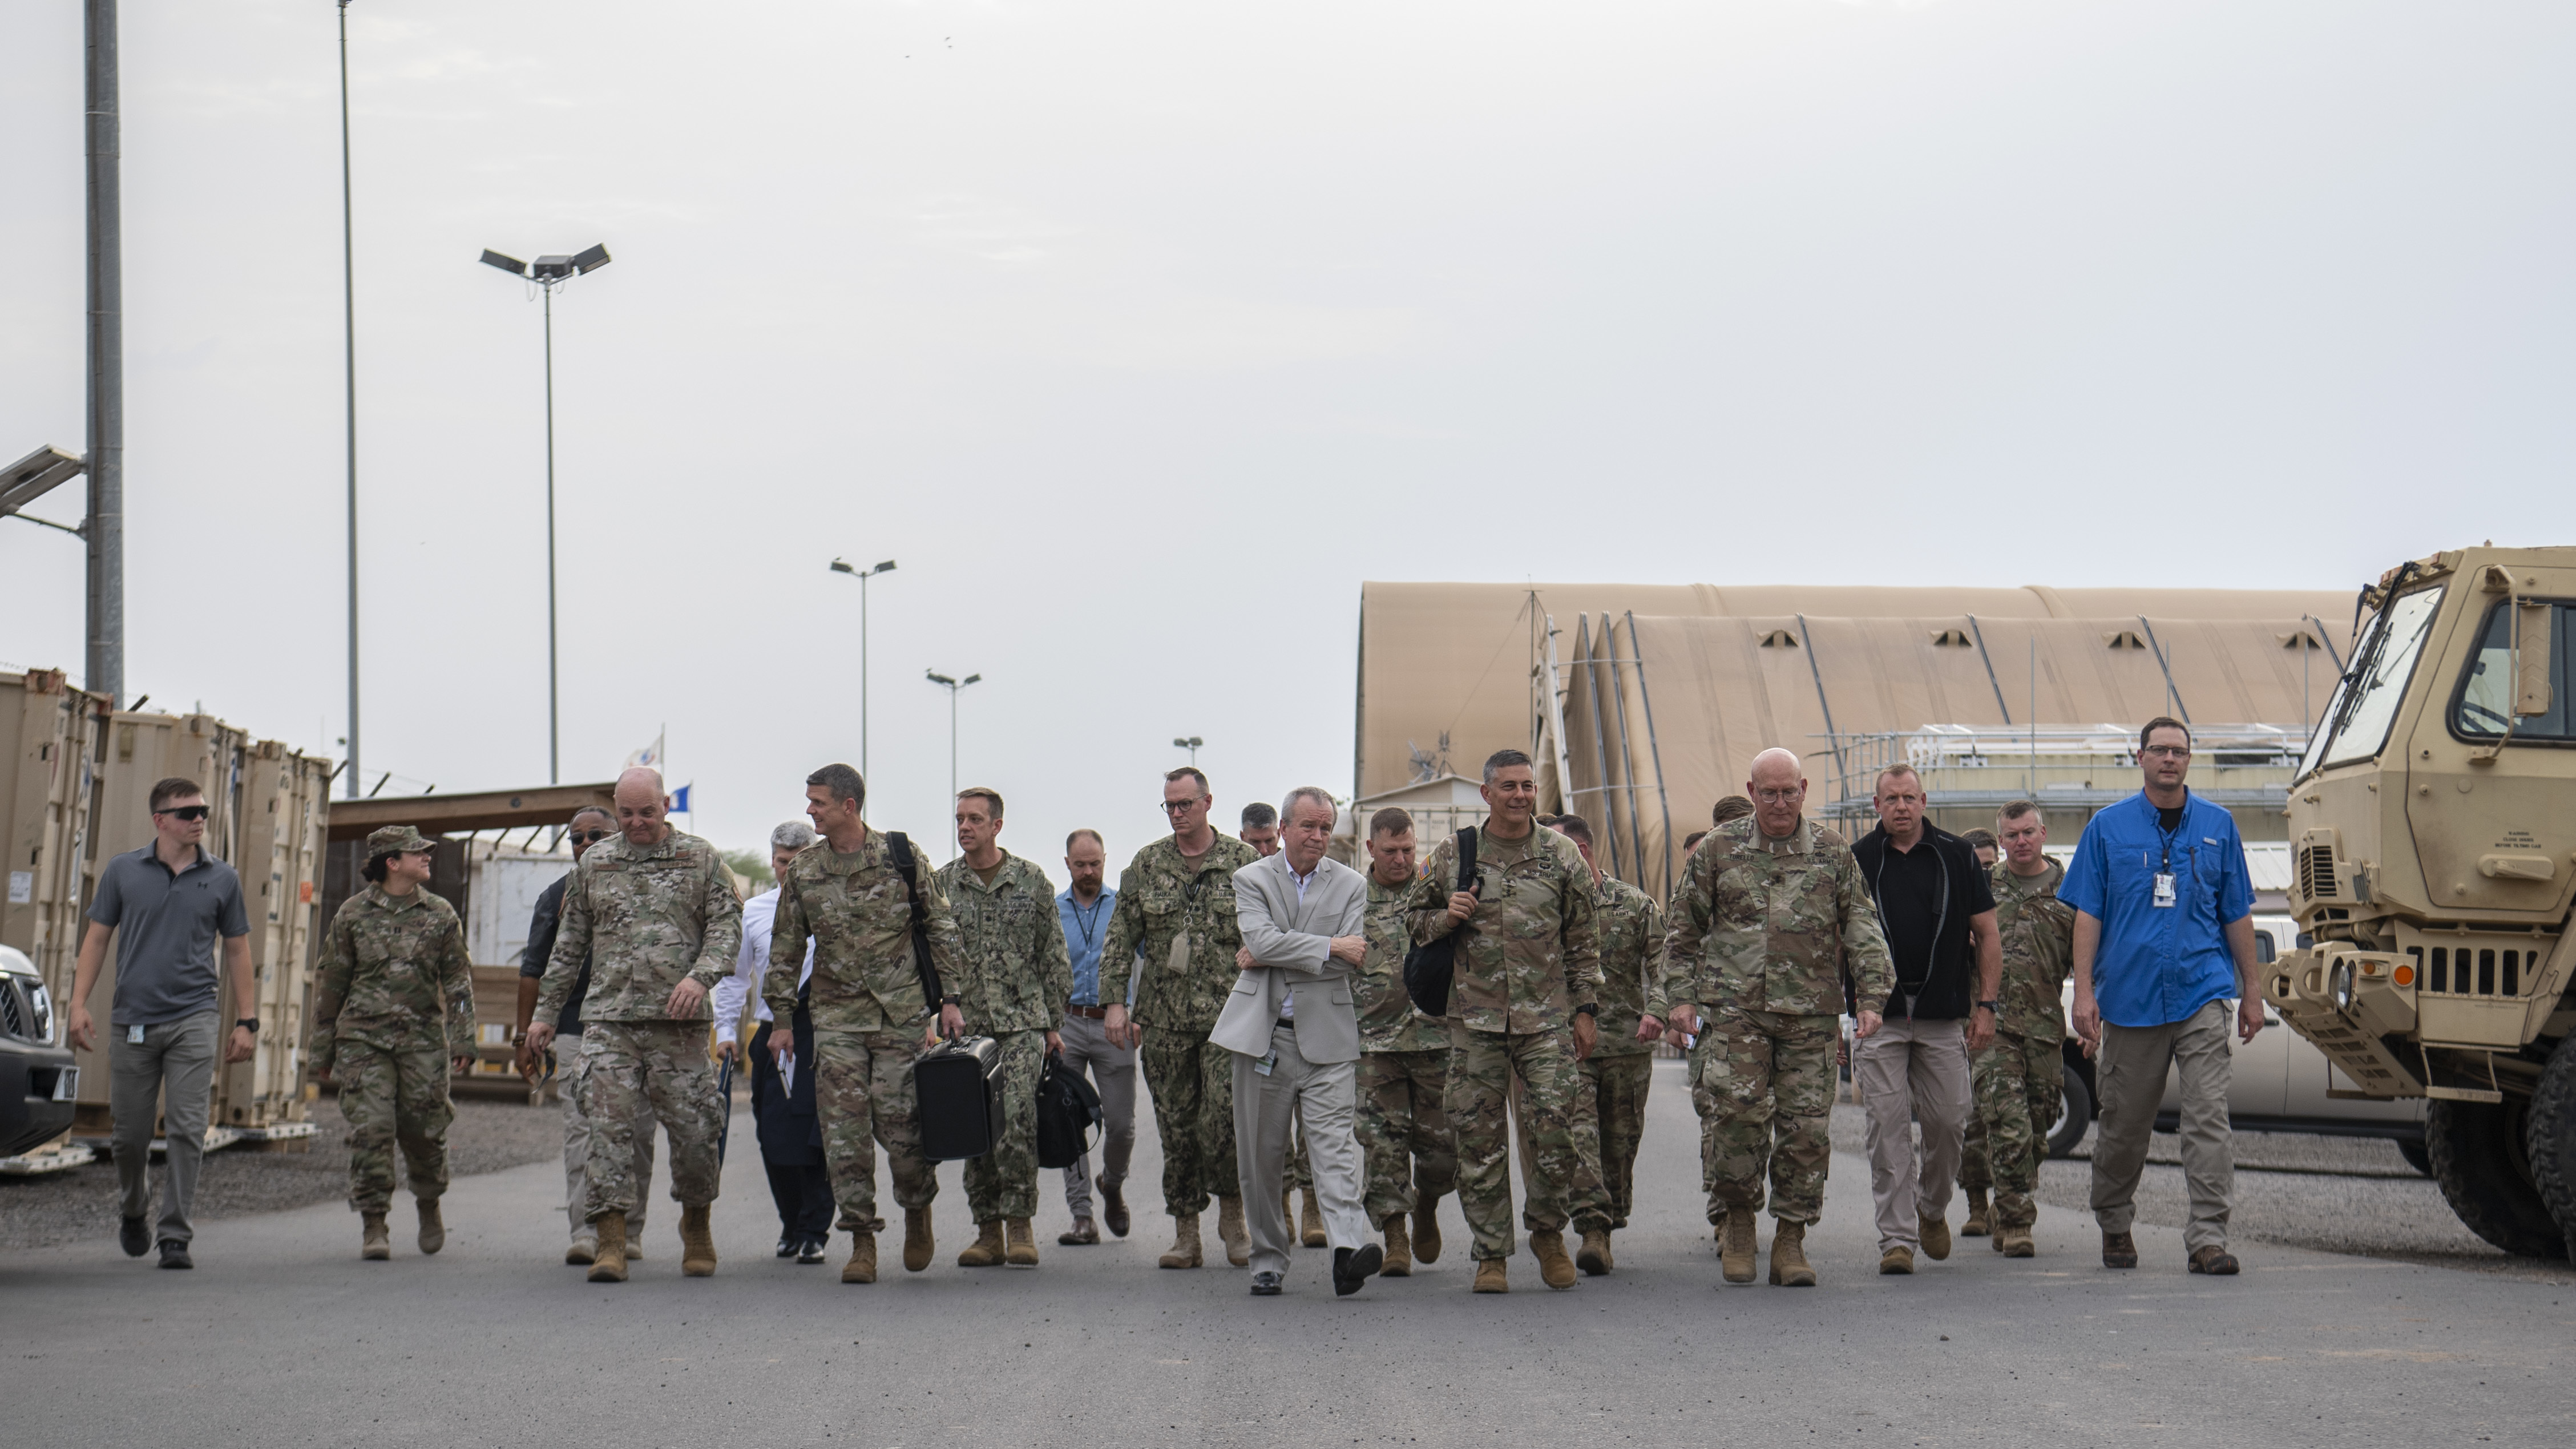 U.S. Army Gen. Stephen J. Townsend, commander, U.S. Africa Command (AFRICOM), center-right, is escorted while touring Camp Lemonnier by U.S. Army Maj. Gen. Michael Turello, commanding general, Combined Joint Task Force-Horn of Africa (CJTF-HOA), and U.S. Ambassador to Djibouti, Larry E. André at Camp Lemonnier, Djibouti, August 5, 2019. As commander of AFRICOM Townsend is in charge of military relations with African nations, the African Union and African regional security organizations. Townsend visited Djibouti as part of his familiarization of CJTF-HOA. (U.S. Air Force photo by Staff Sgt. J.D. Strong II)